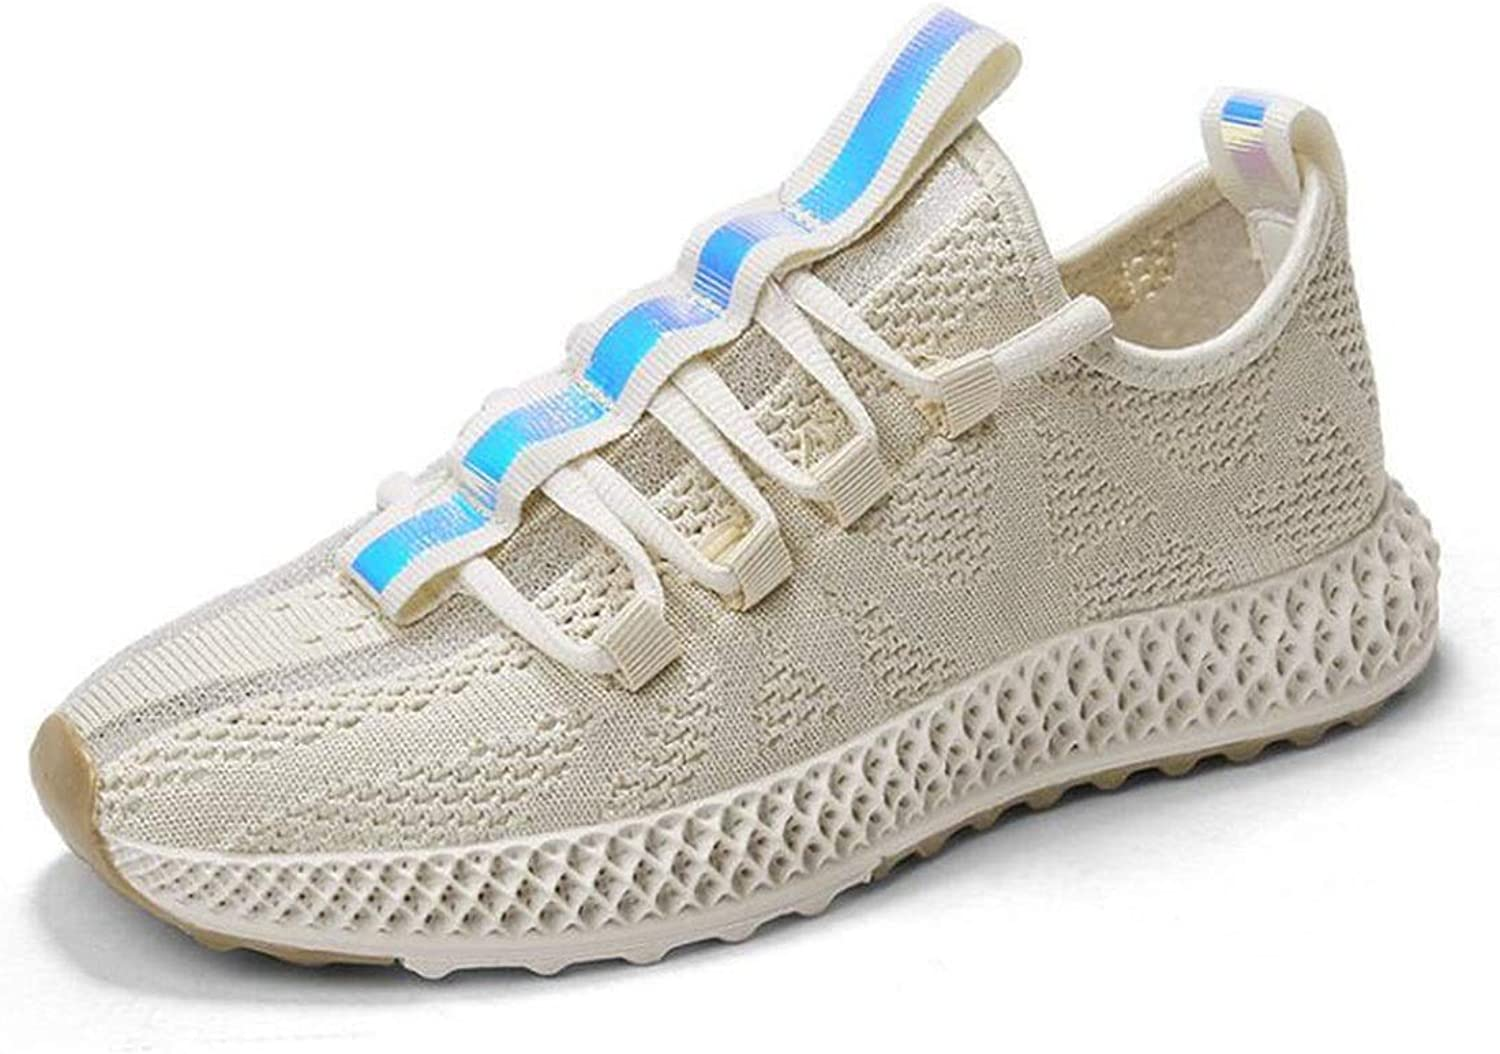 Women's Breathable Mesh Tennis Athletic shoes,Fashion Walking Sports Running shoes,Women Lightweight shoes (color   Beige, Size   36)